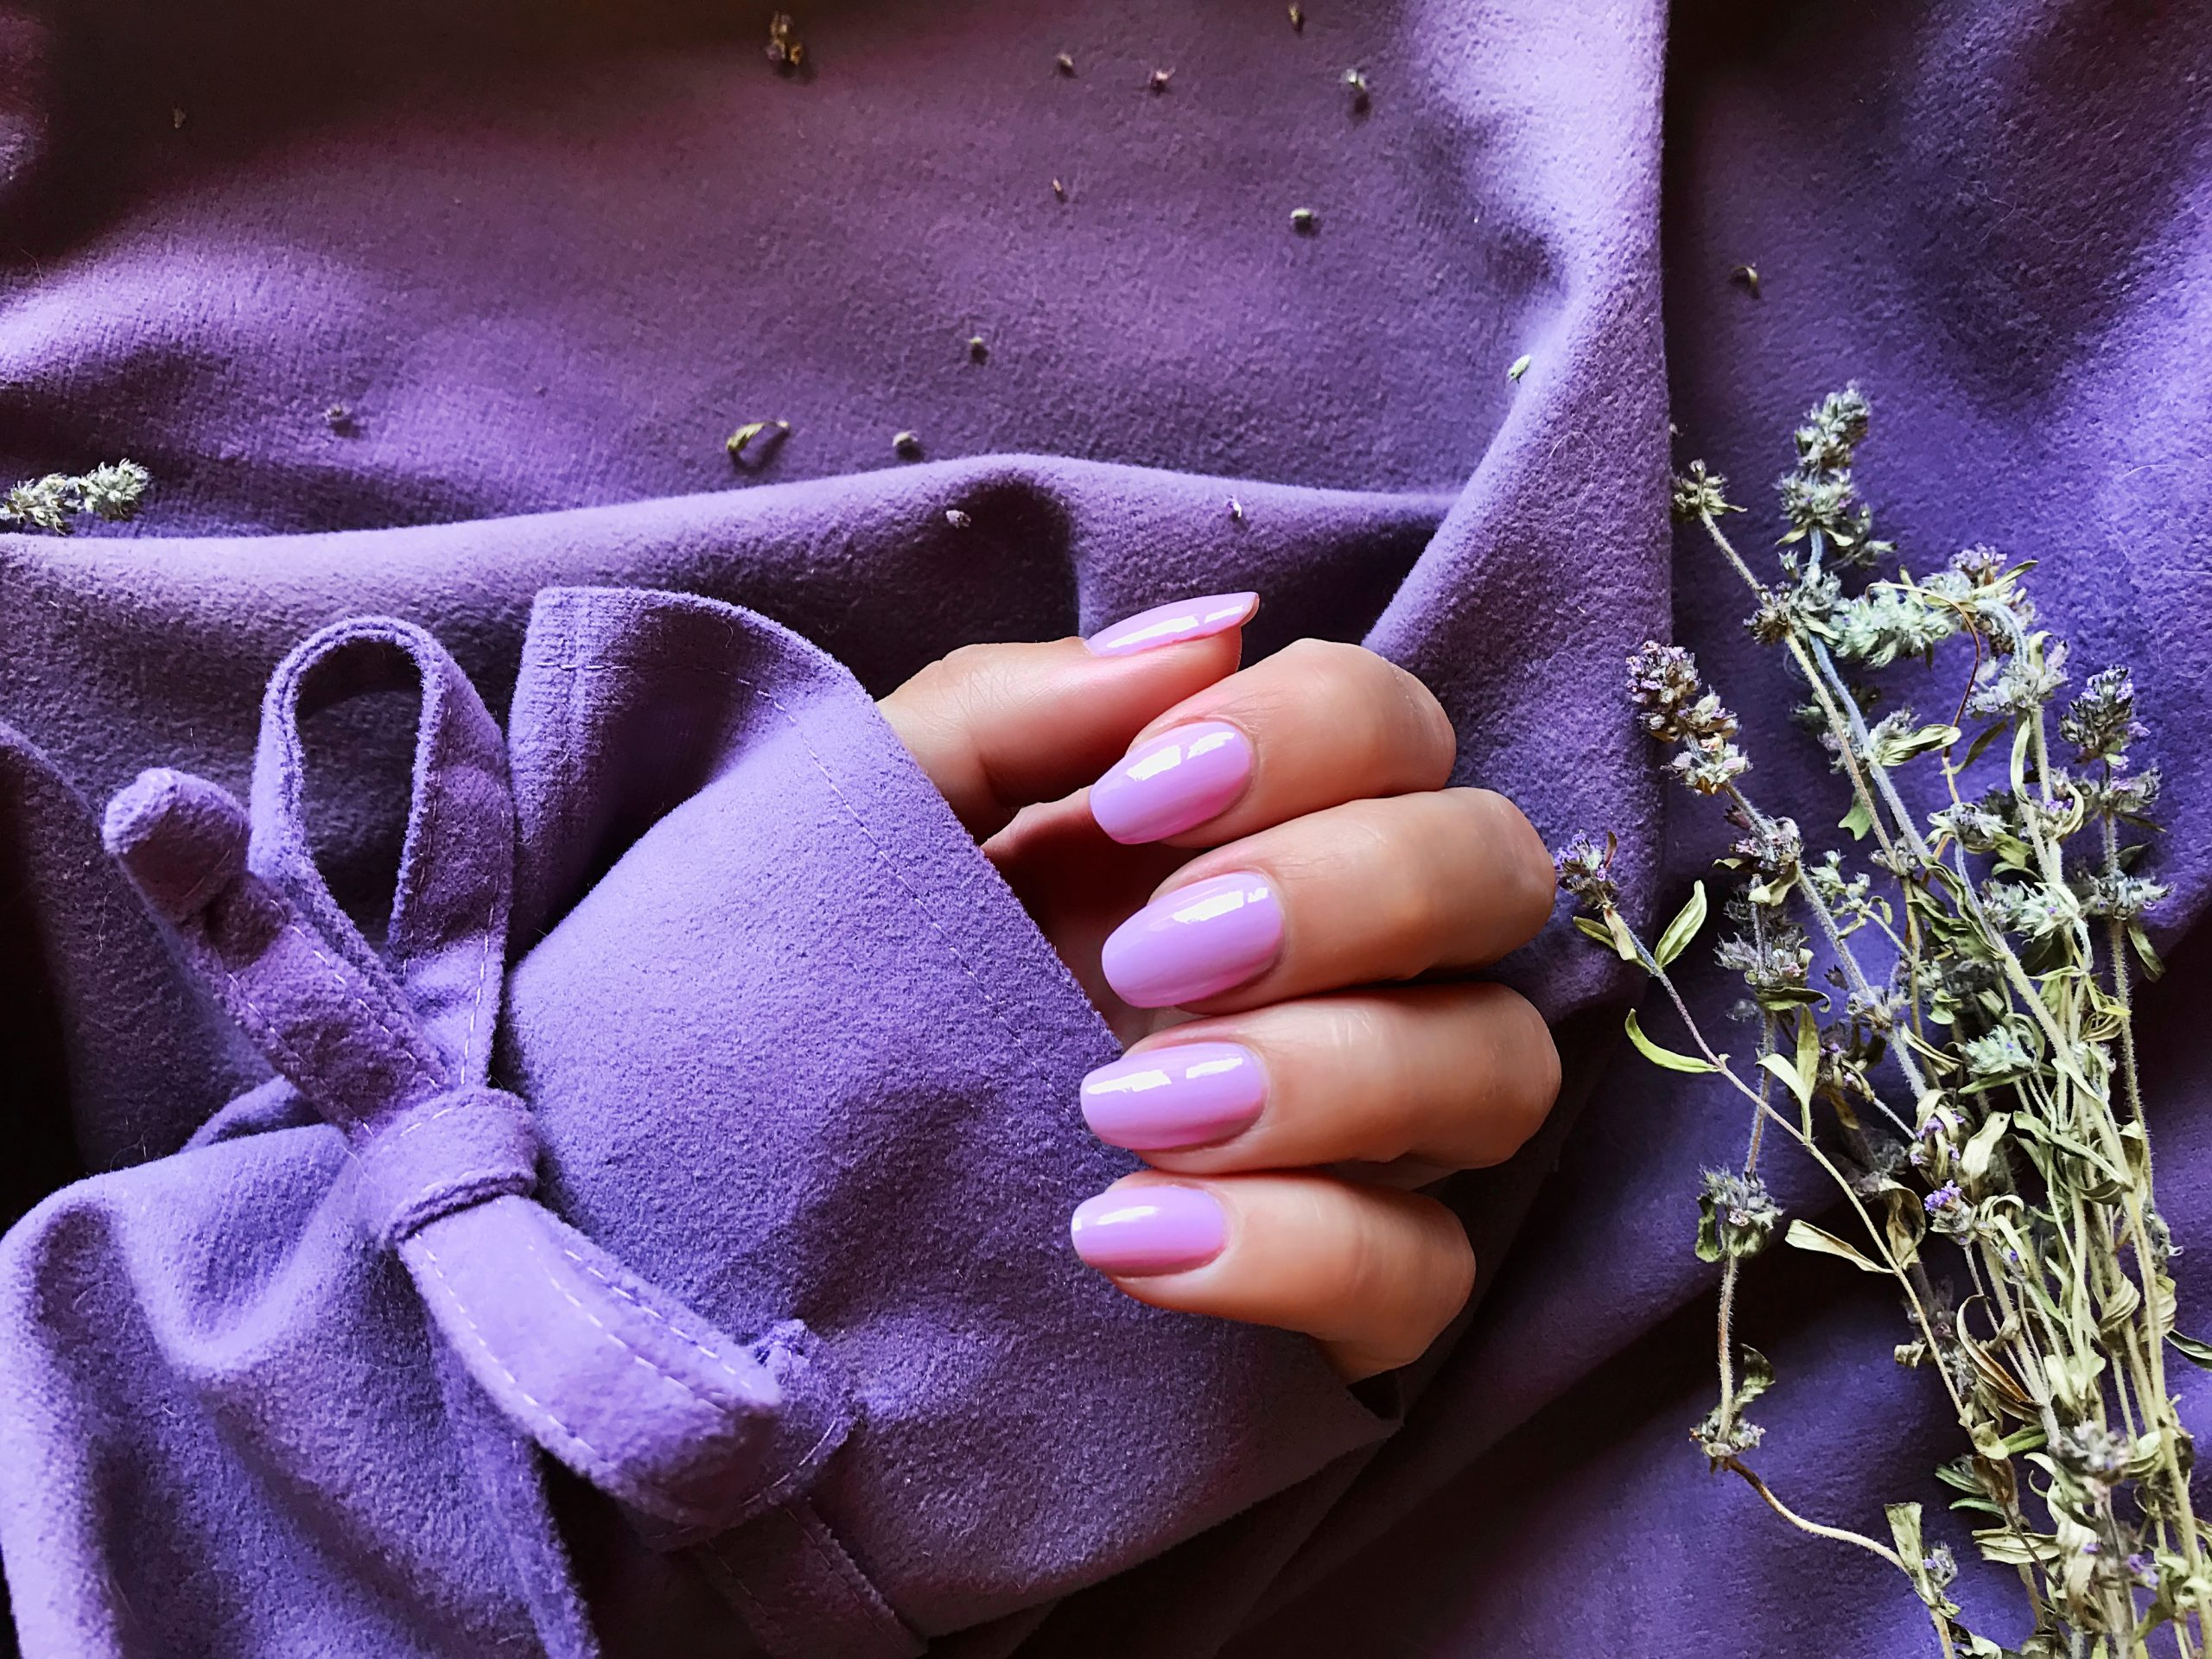 purple-manicure-hand-woman-beauty-care-spa-day-spa-7ZTQGVD